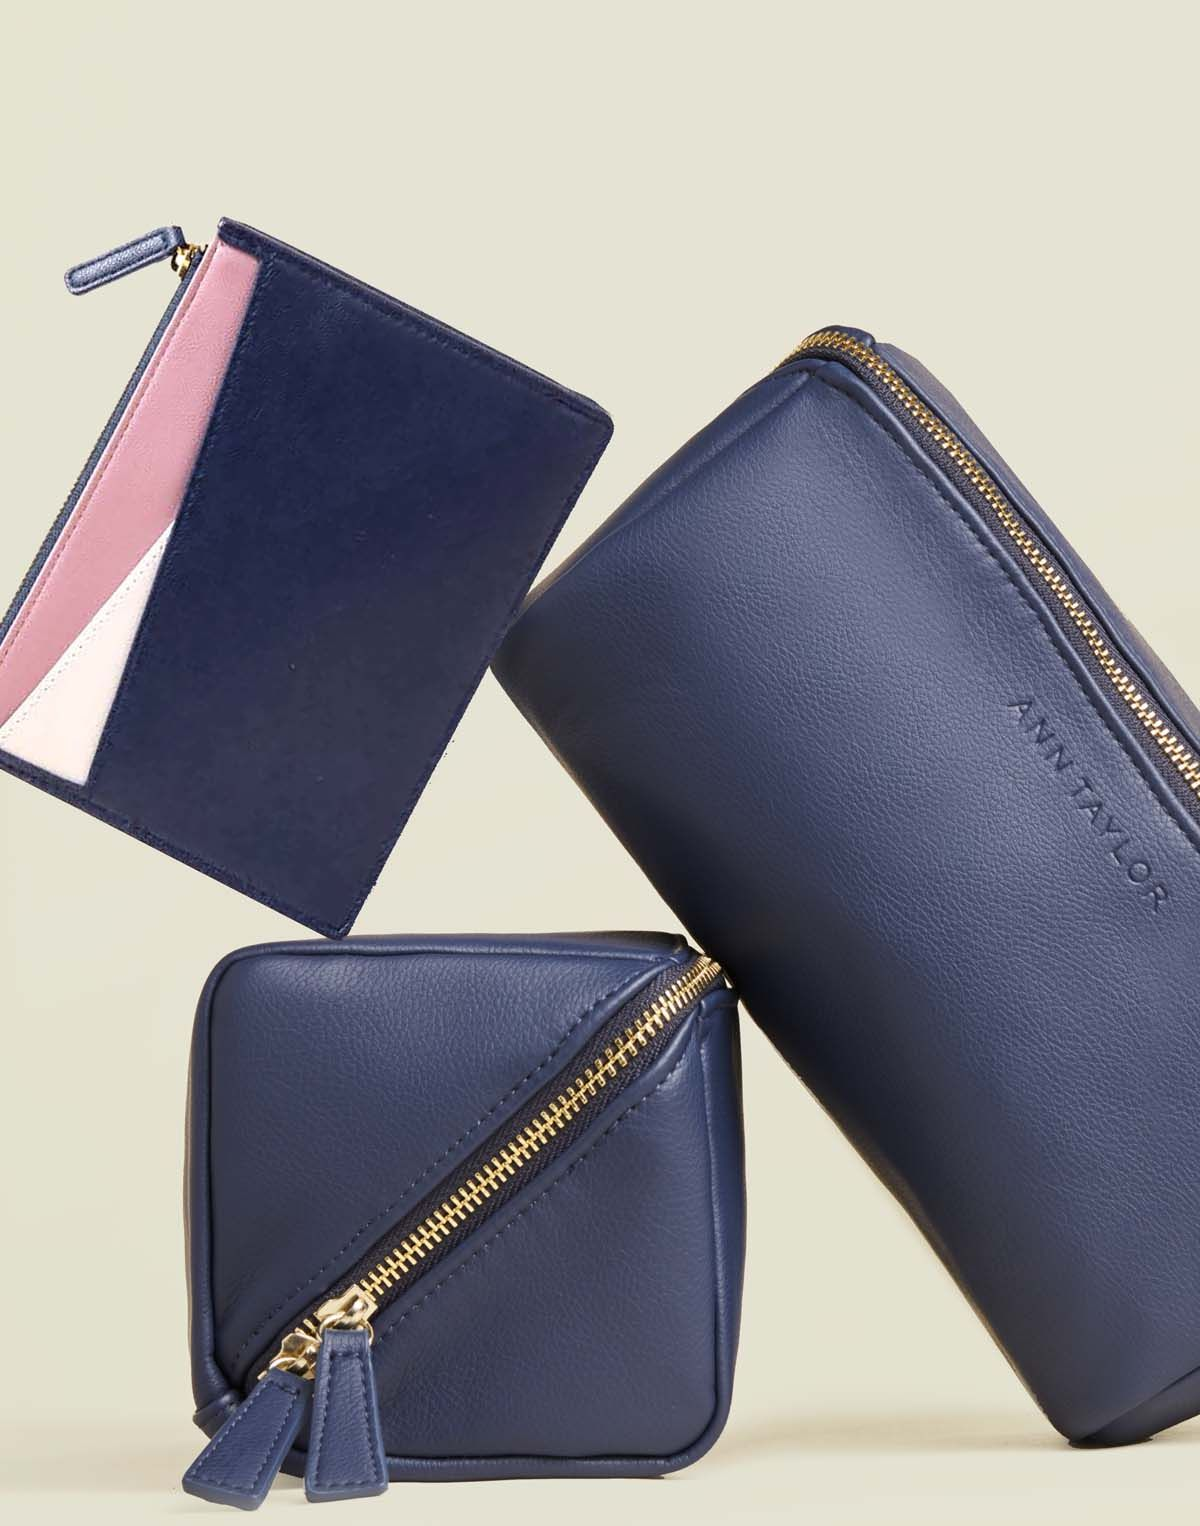 Collection of zip pouches